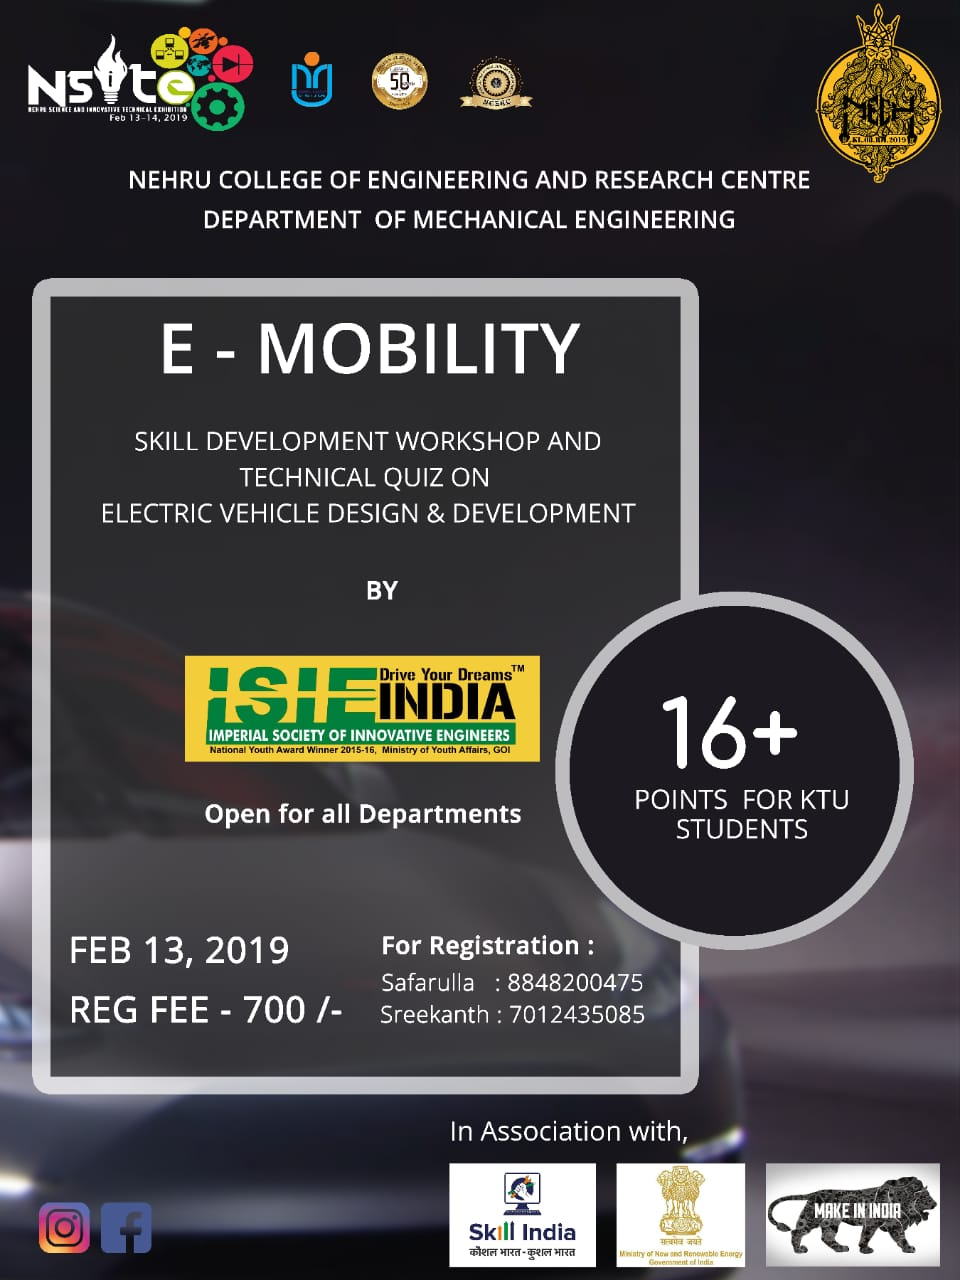 E-Mobility 2019, Nehru College of Engineering and Research Centre